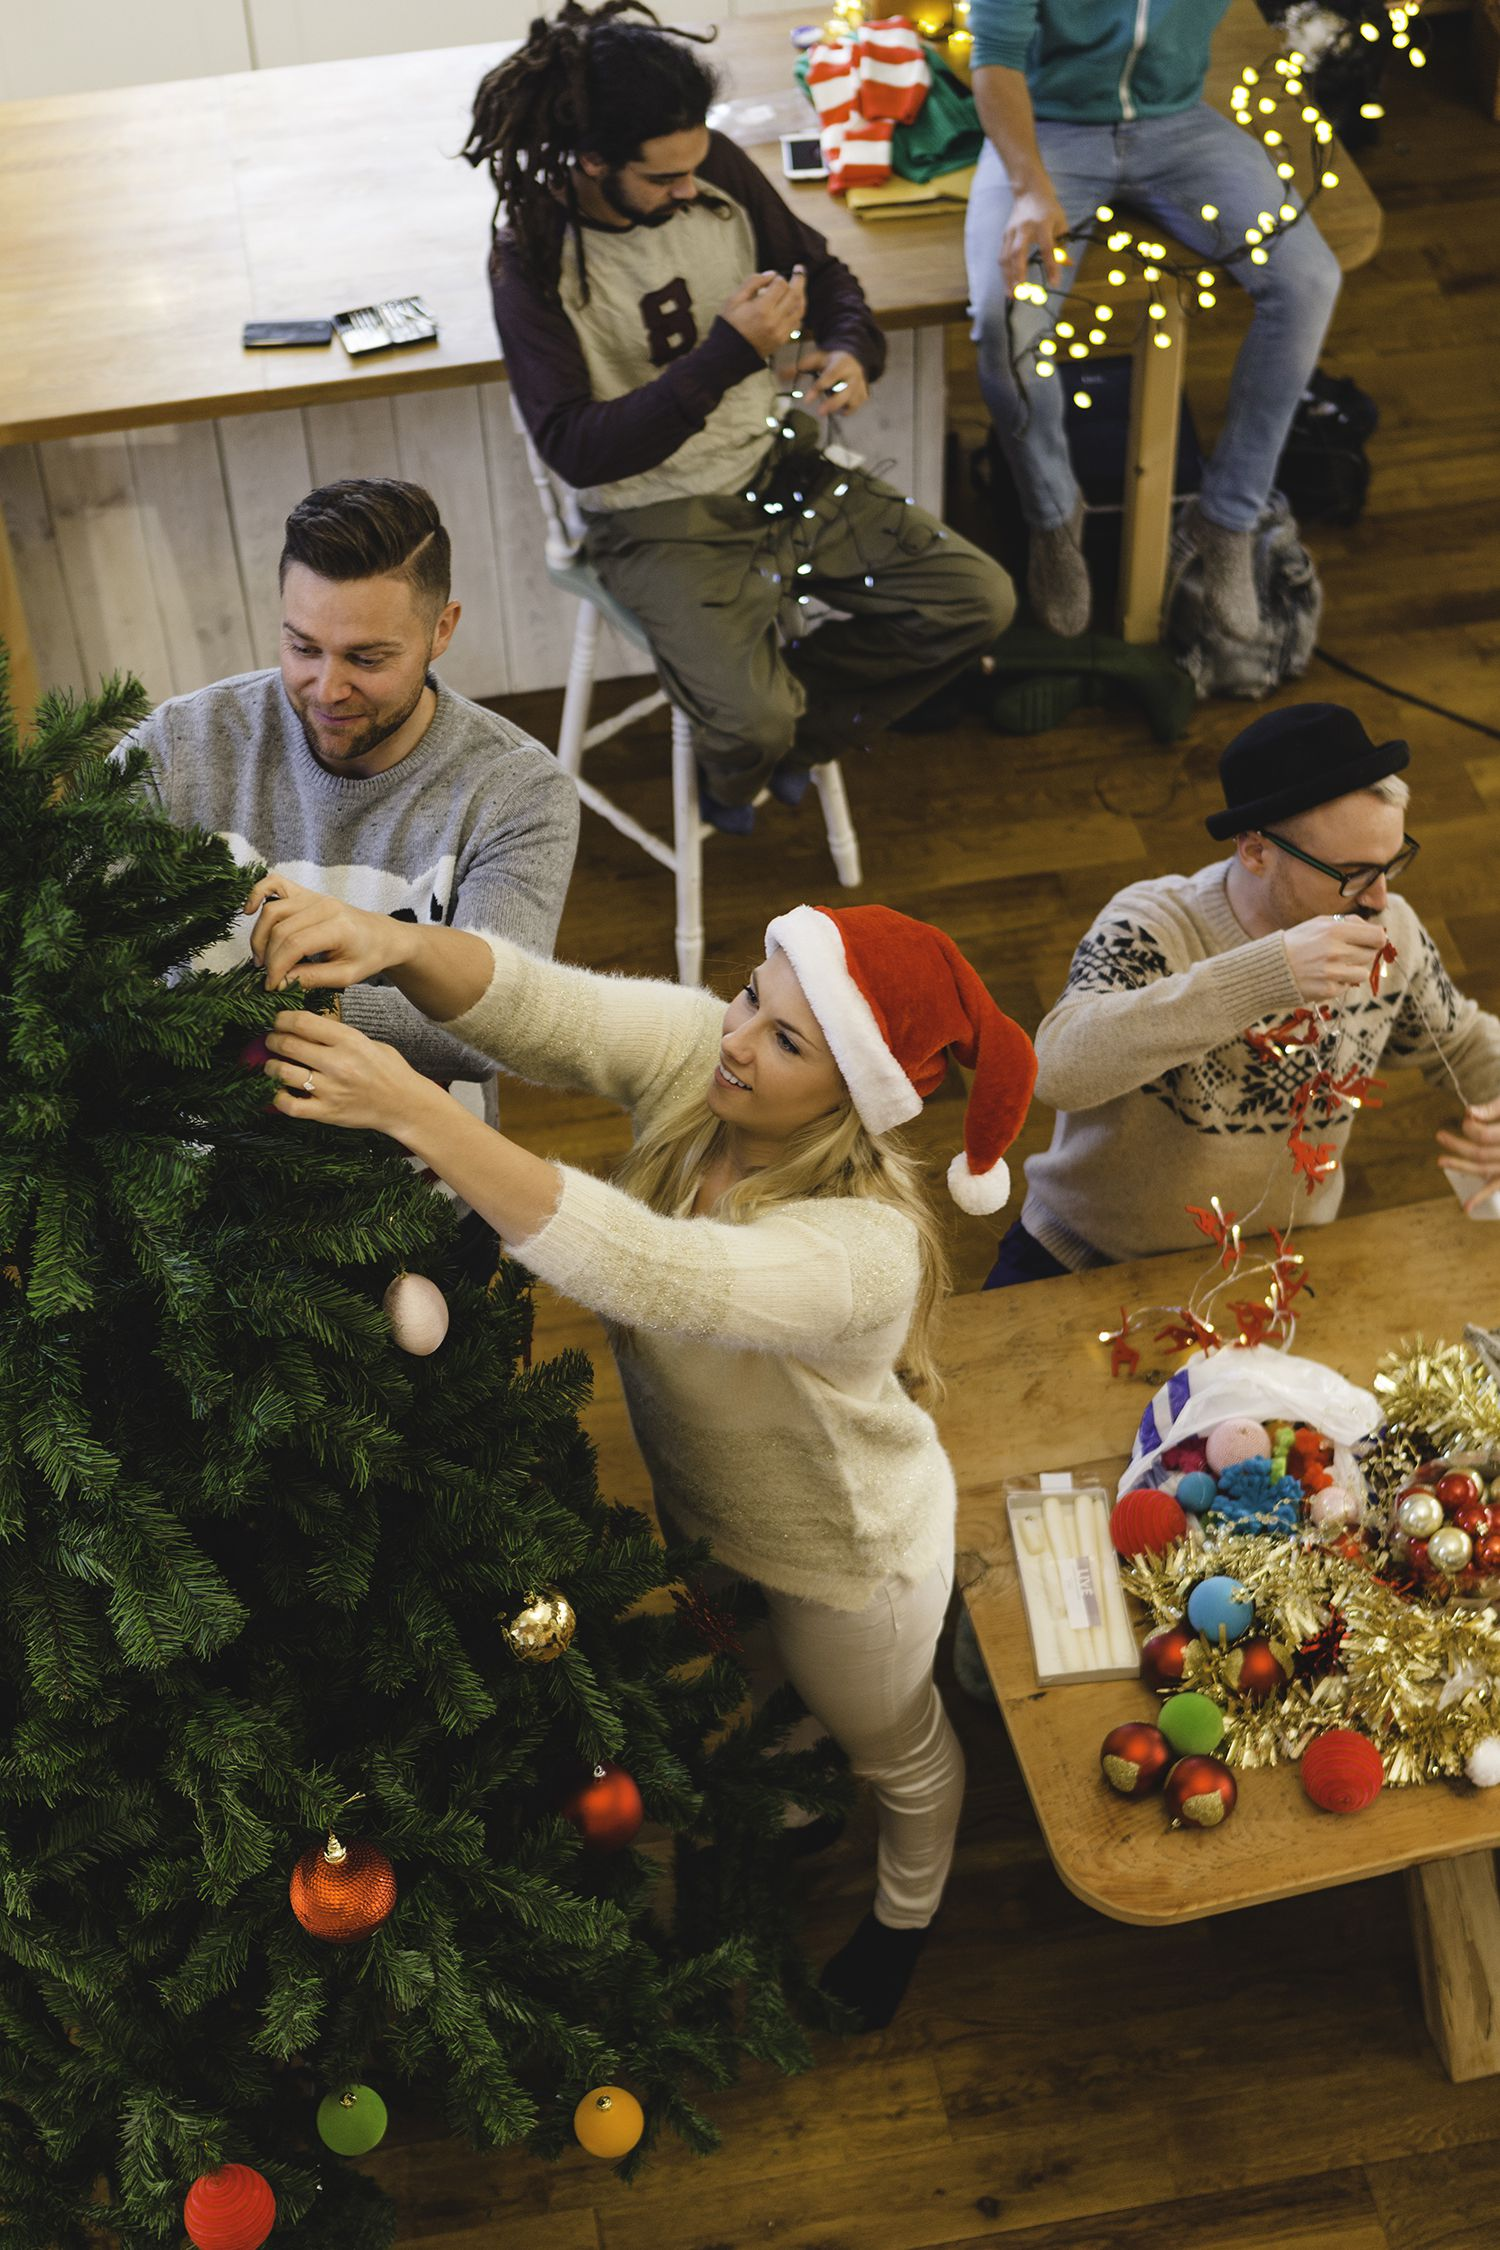 10 Ideas for a Tree Trimming Party